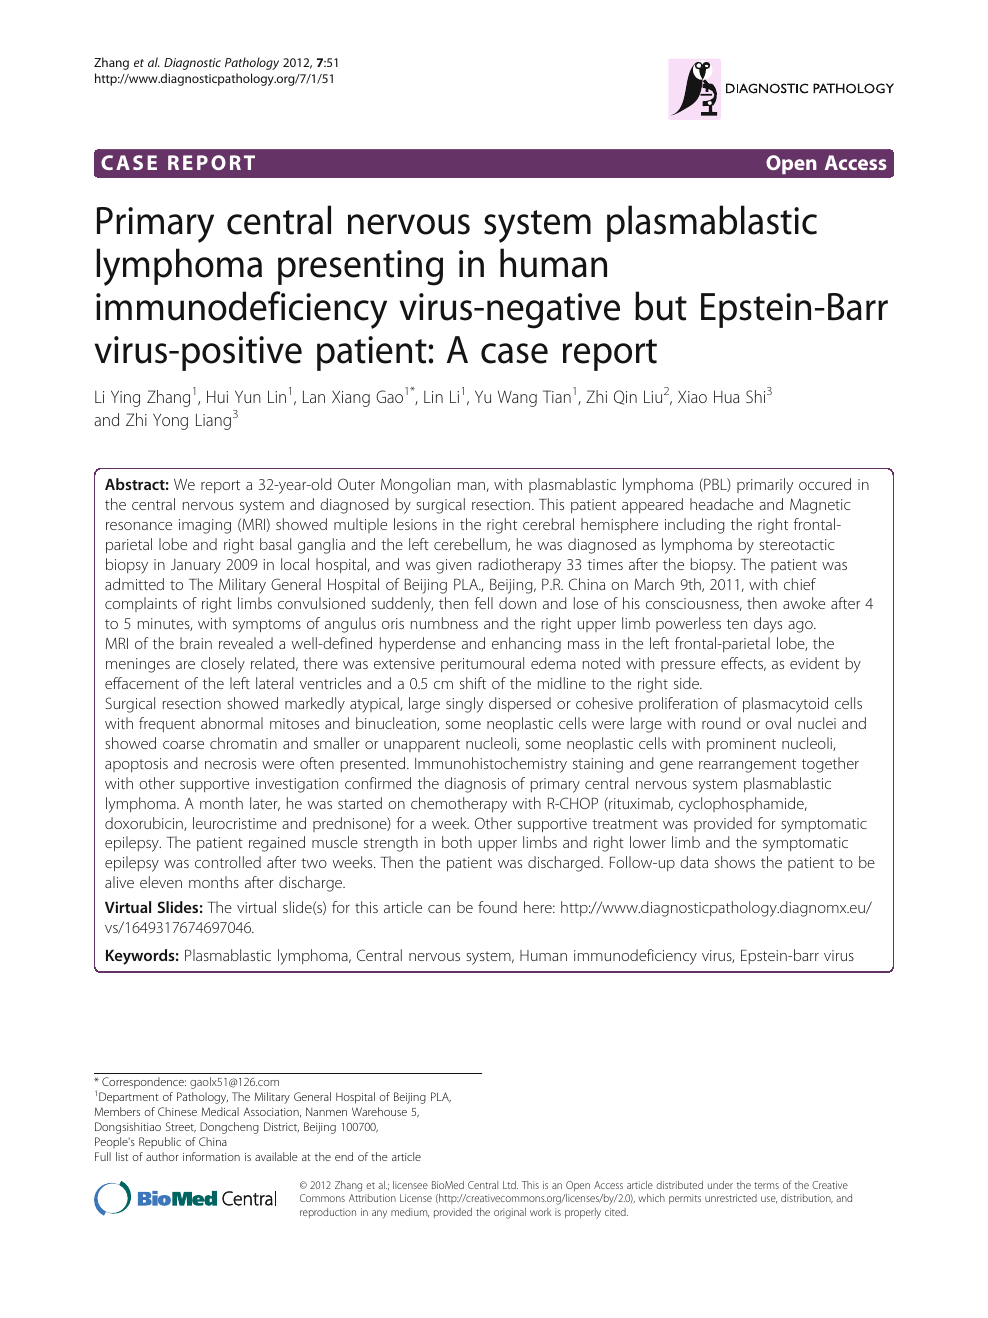 Primary central nervous system plasmablastic lymphoma presenting in